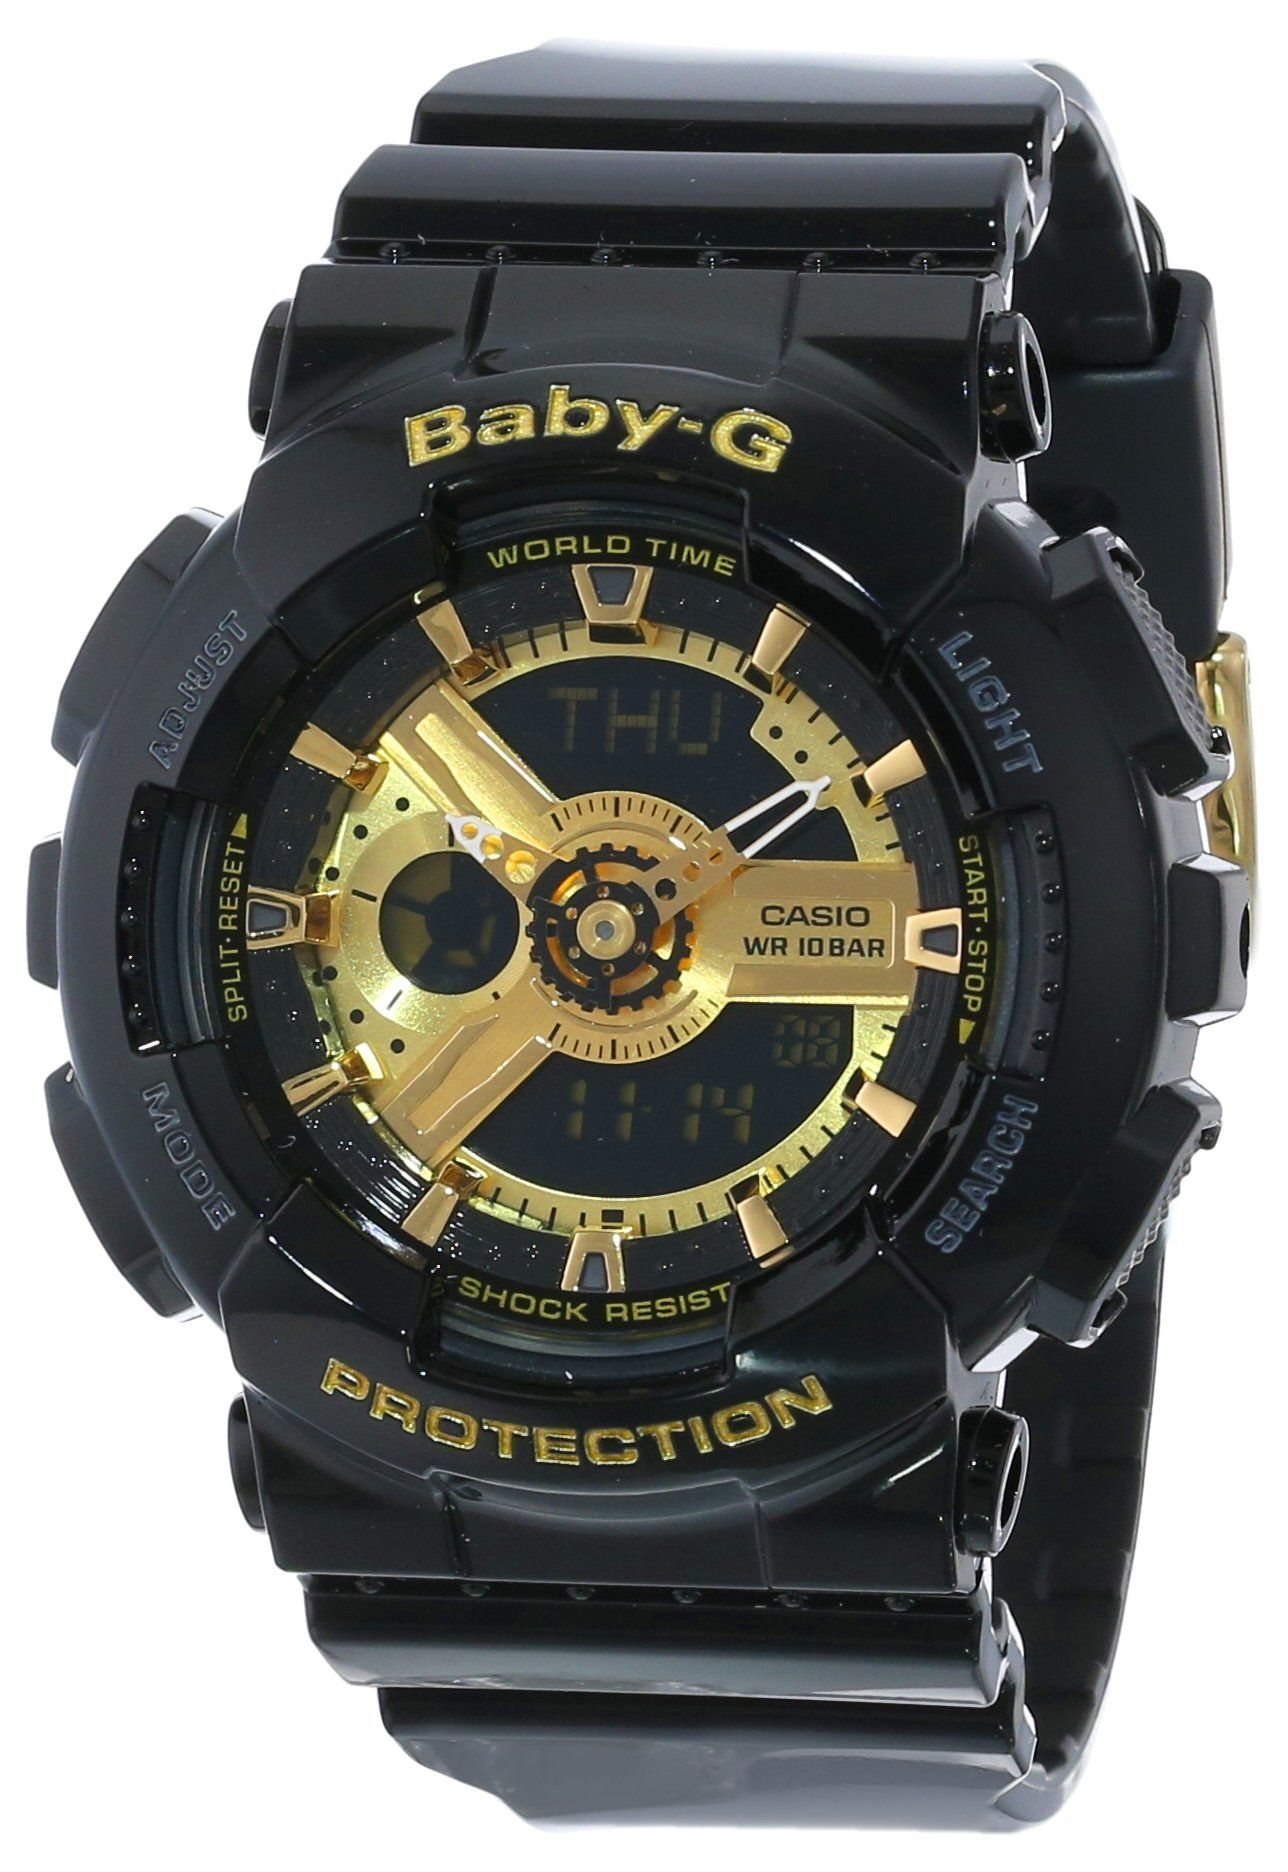 Amazon.com: Casio Women's BA-110-1ACR Baby-G Goldtone Analog-Digital Display and Black Resin Strap Watch: Casio: Watches https://www.youtube.com/watch?v=Bbwd8uC6LfU